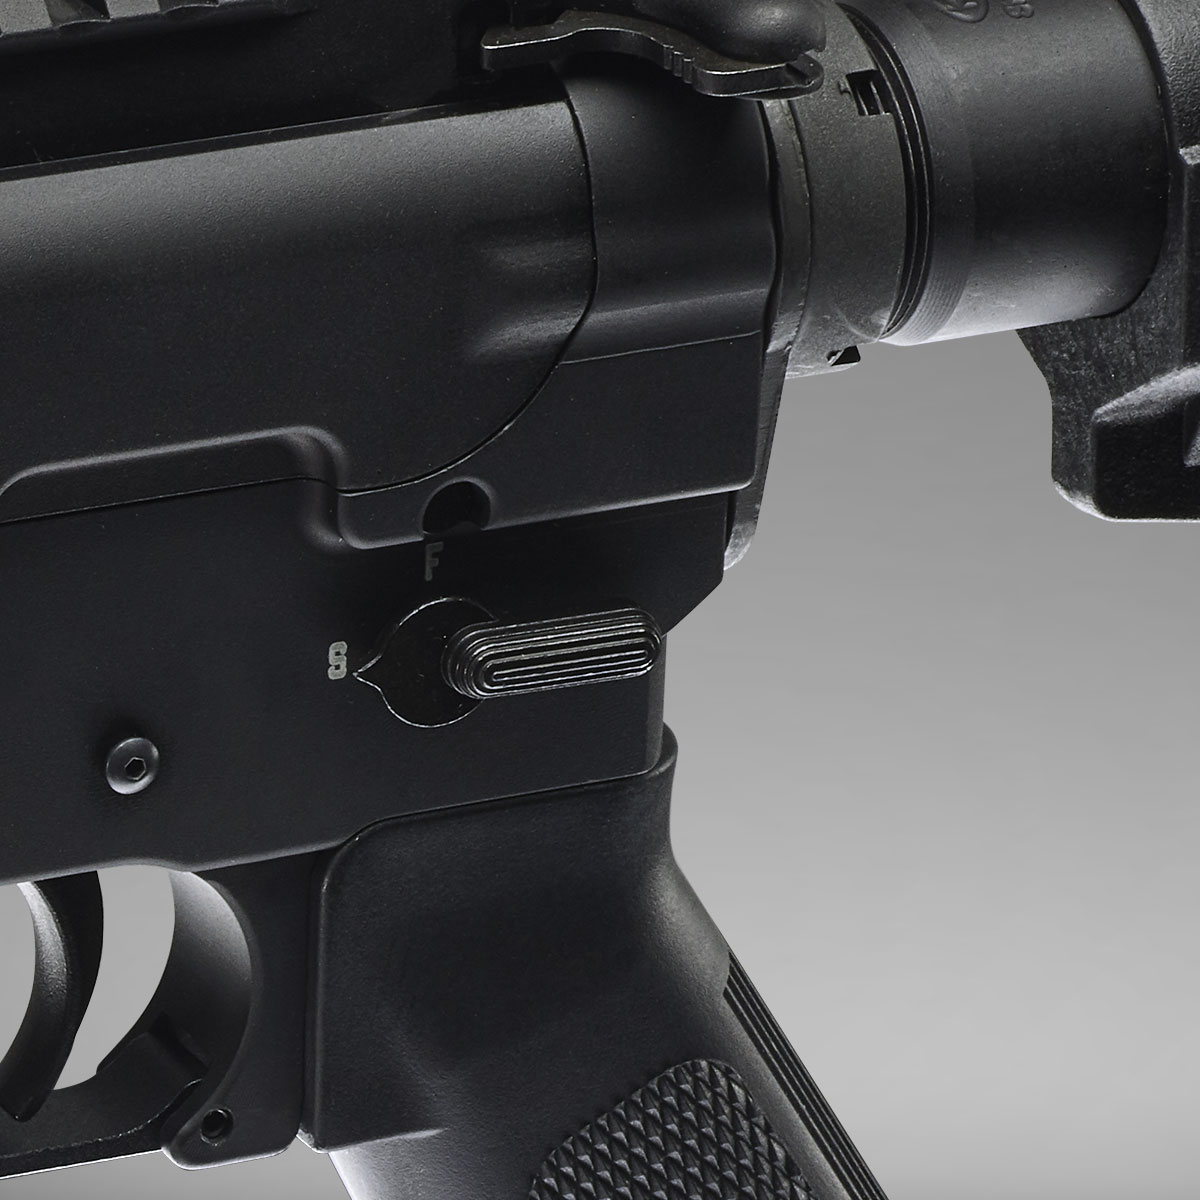 Freedom Ordnance FX-9 Feature Safety